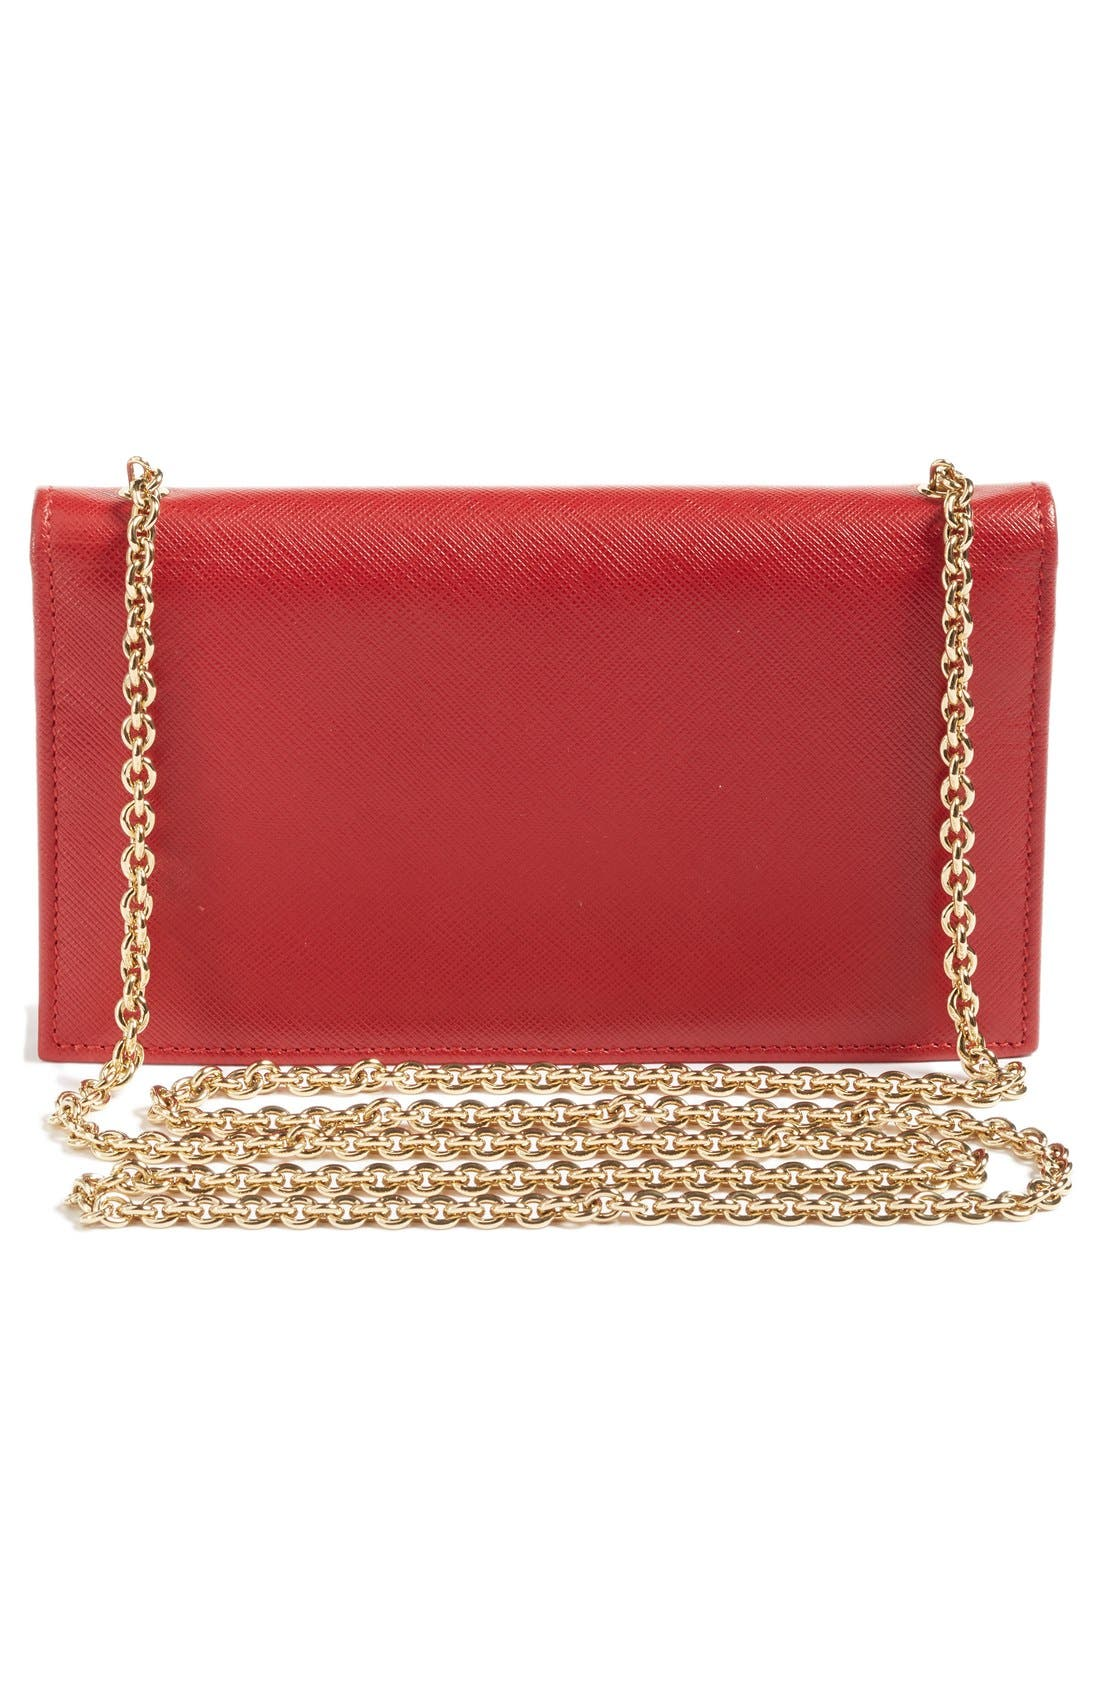 Salavatore Ferragamo Vara Leather Wallet on a Chain,                             Alternate thumbnail 4, color,                             600